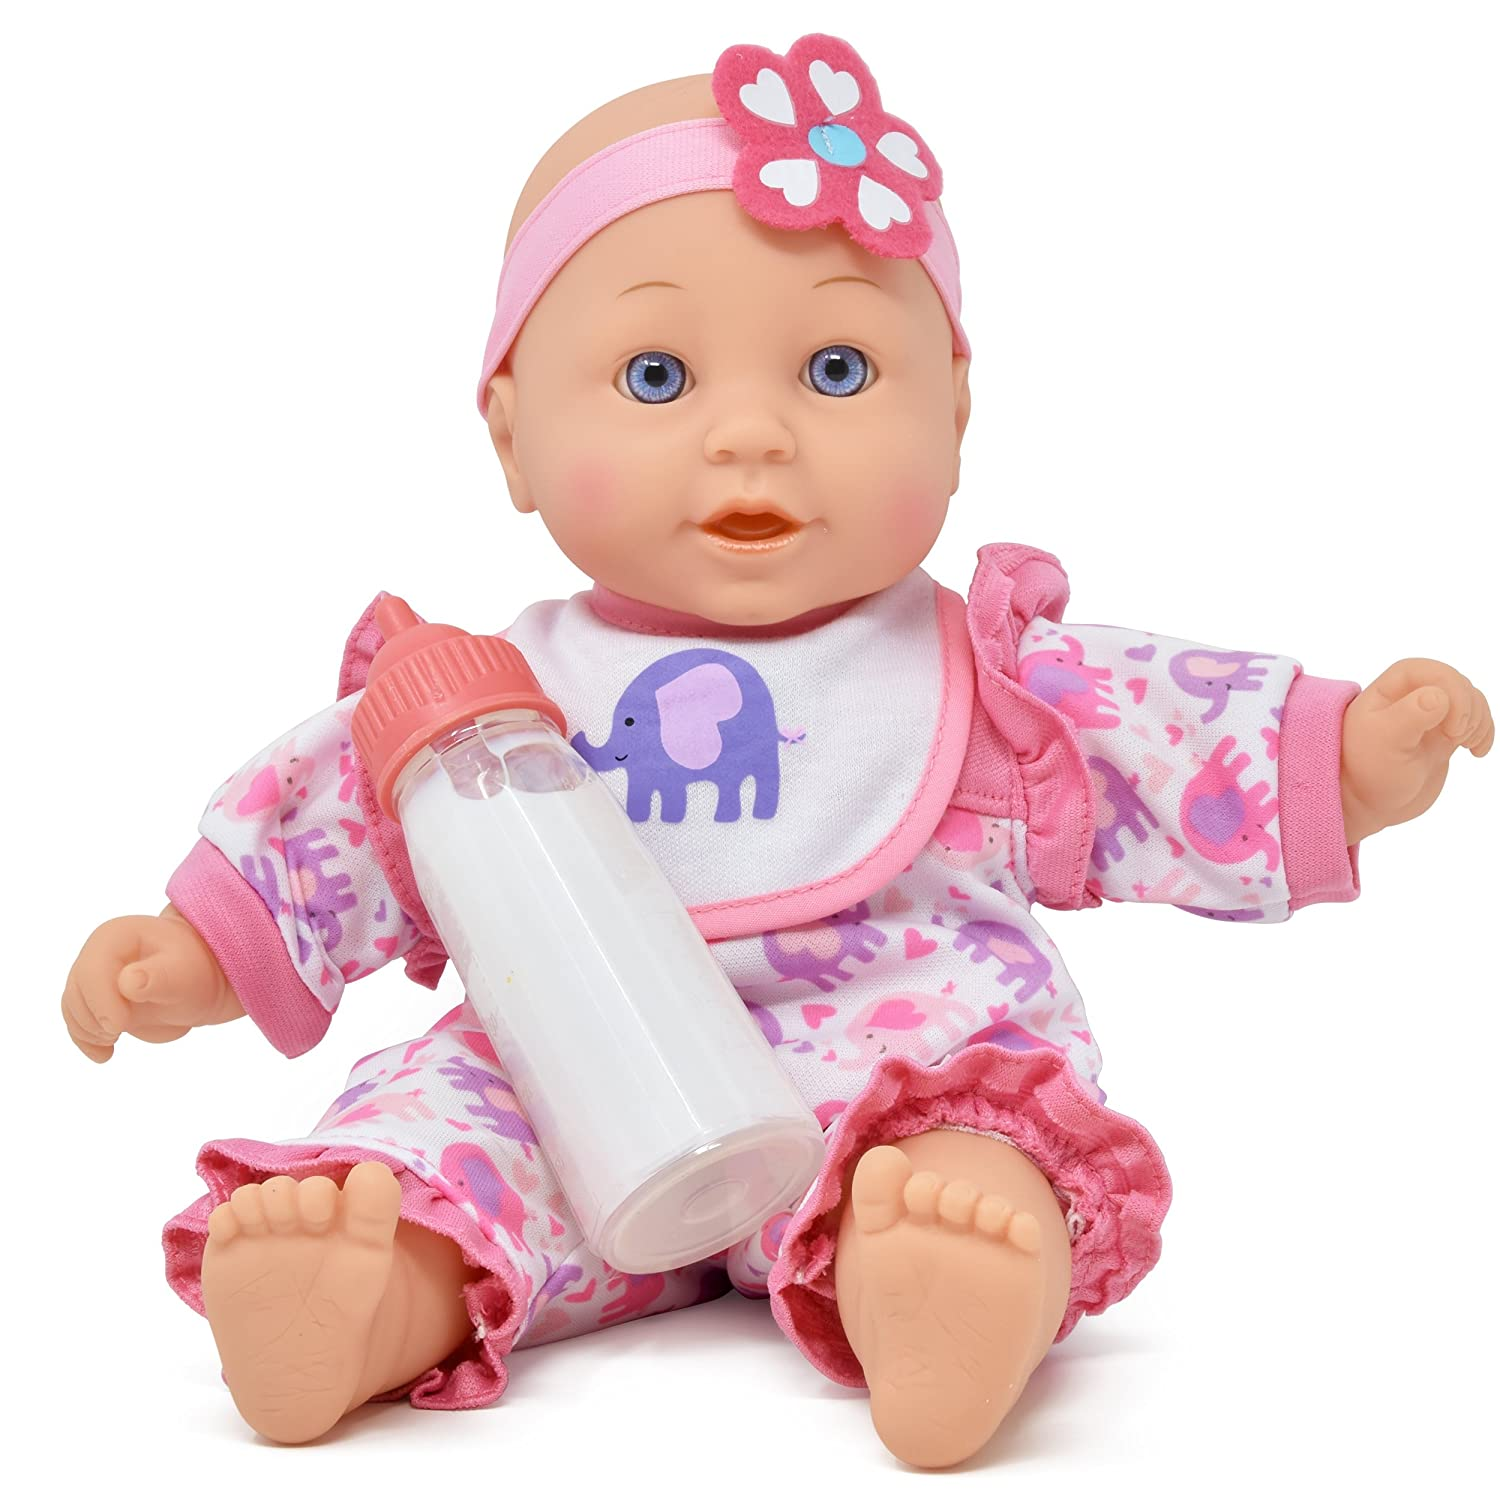 Baby Doll for Kid - 12 inch Soft Body Baby Doll, Magic Bottle and Bib Included